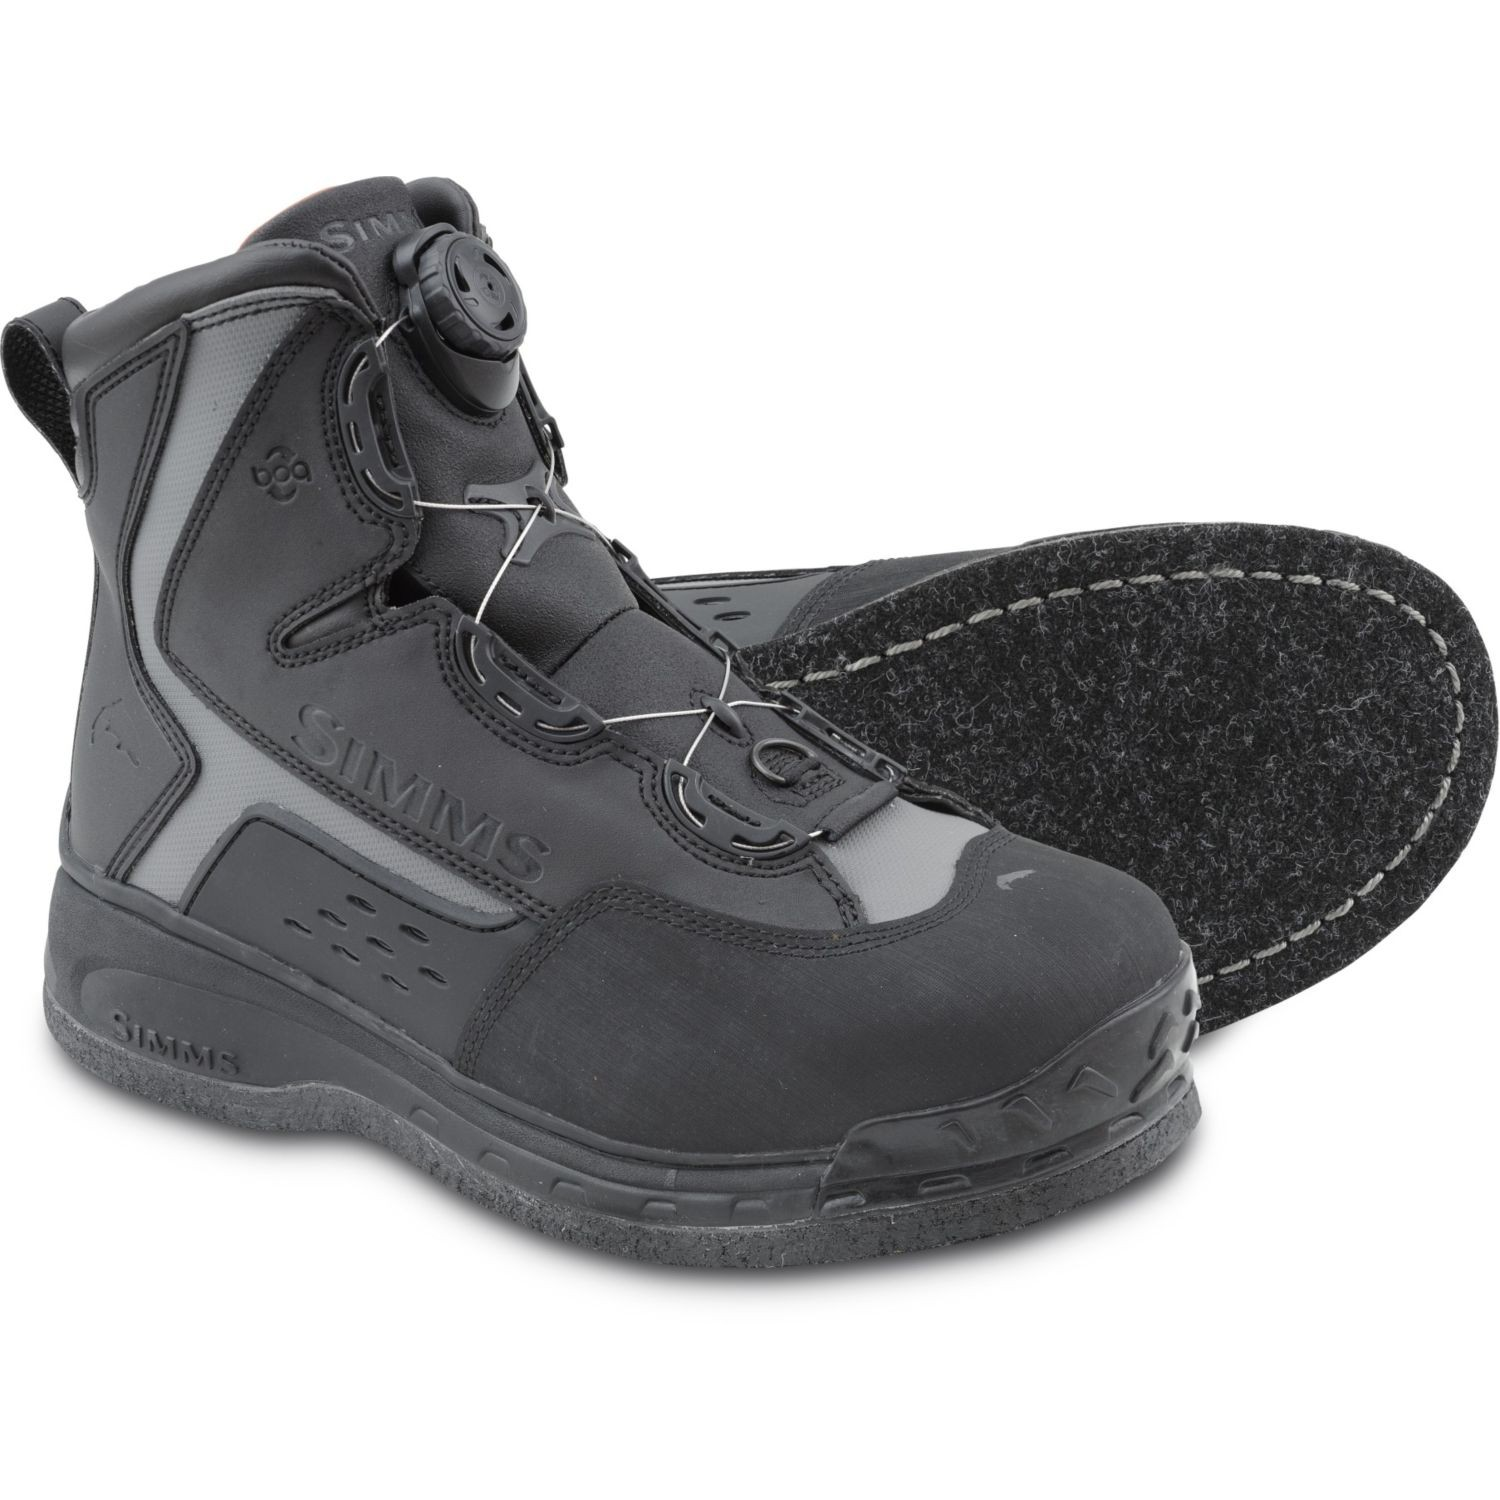 Simms Rivertek BOA Boot Felt